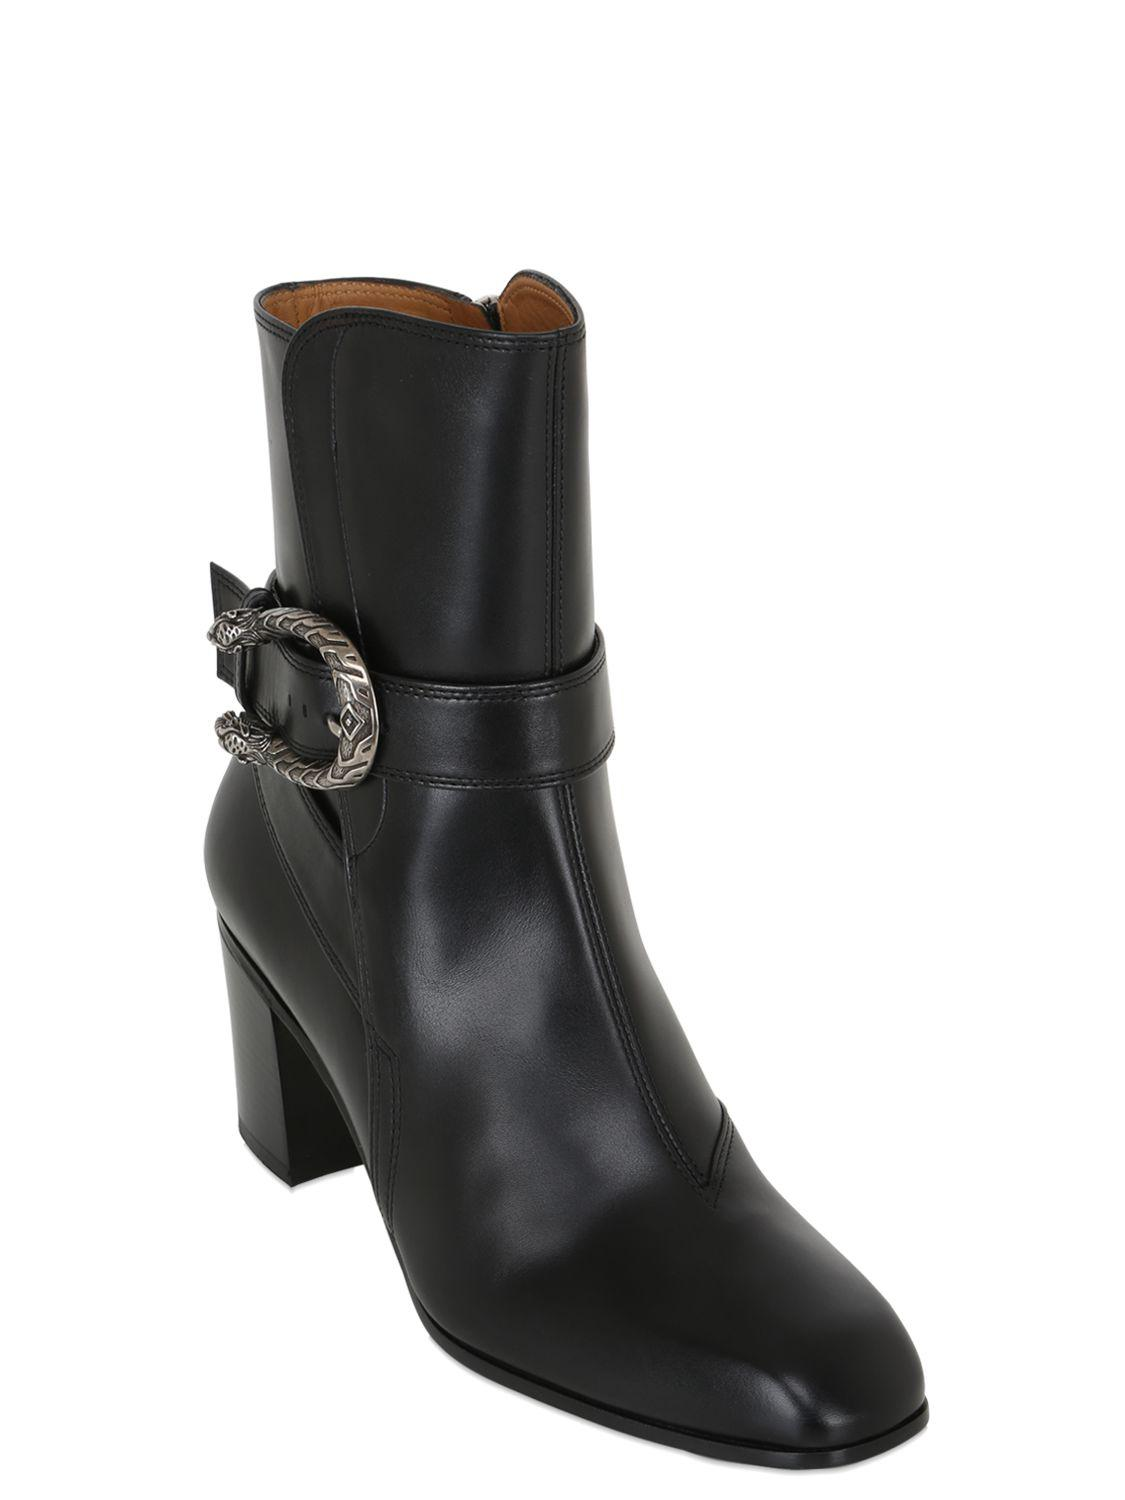 71075d1f5d2 Lyst - Gucci 65mm Dionysus Leather Ankle Boots in Black